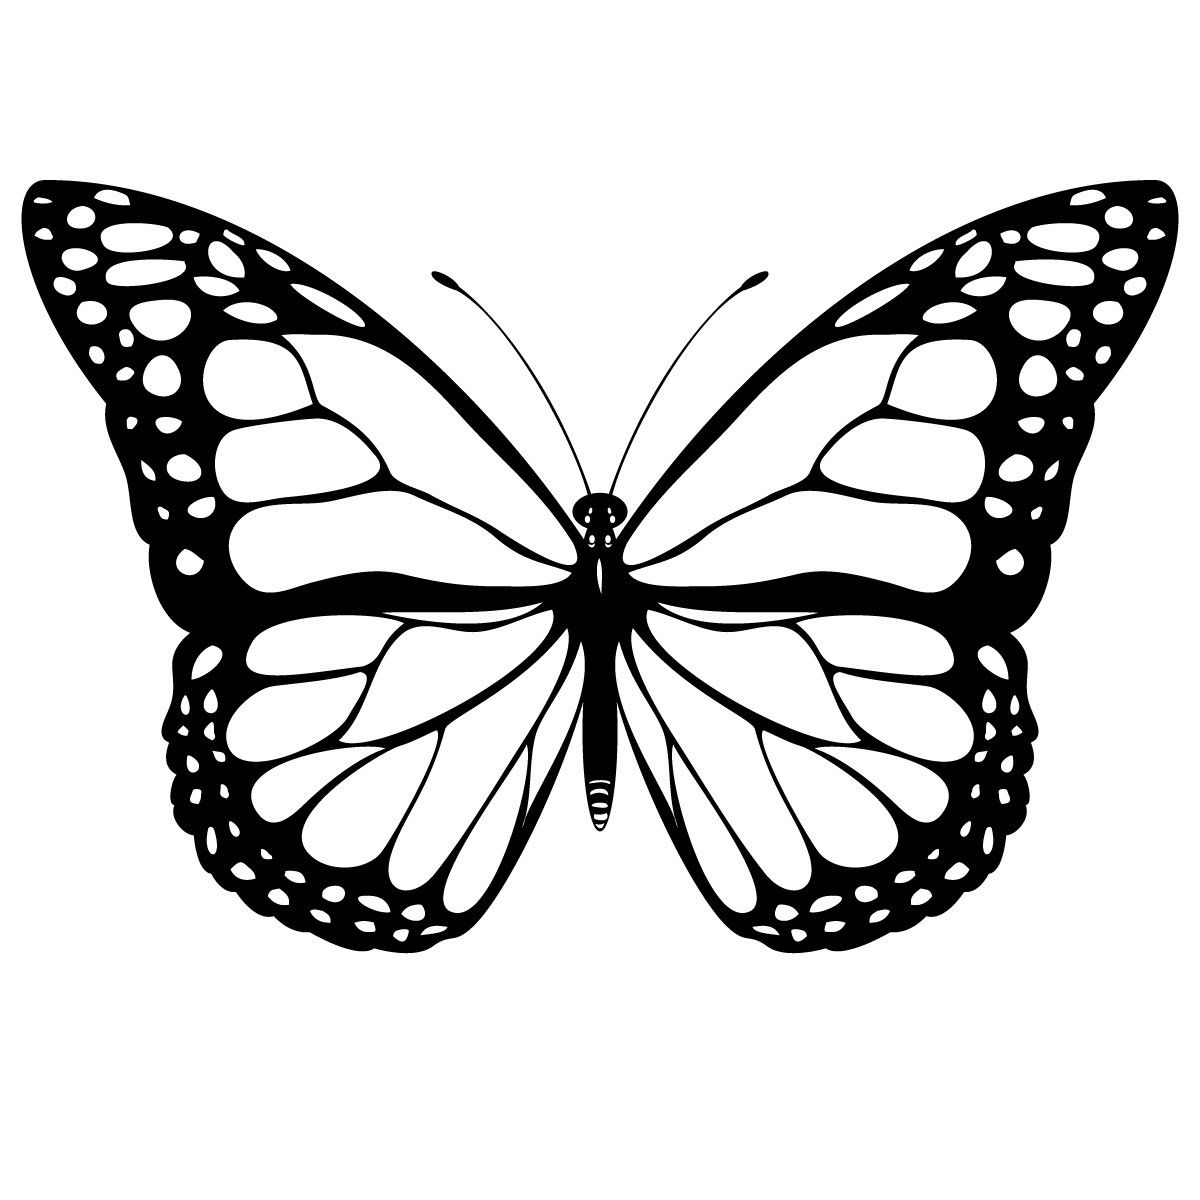 Free Printable Butterfly Coloring Pages For Kids Butterfly Clip Art Butterfly Printable Butterfly Coloring Page